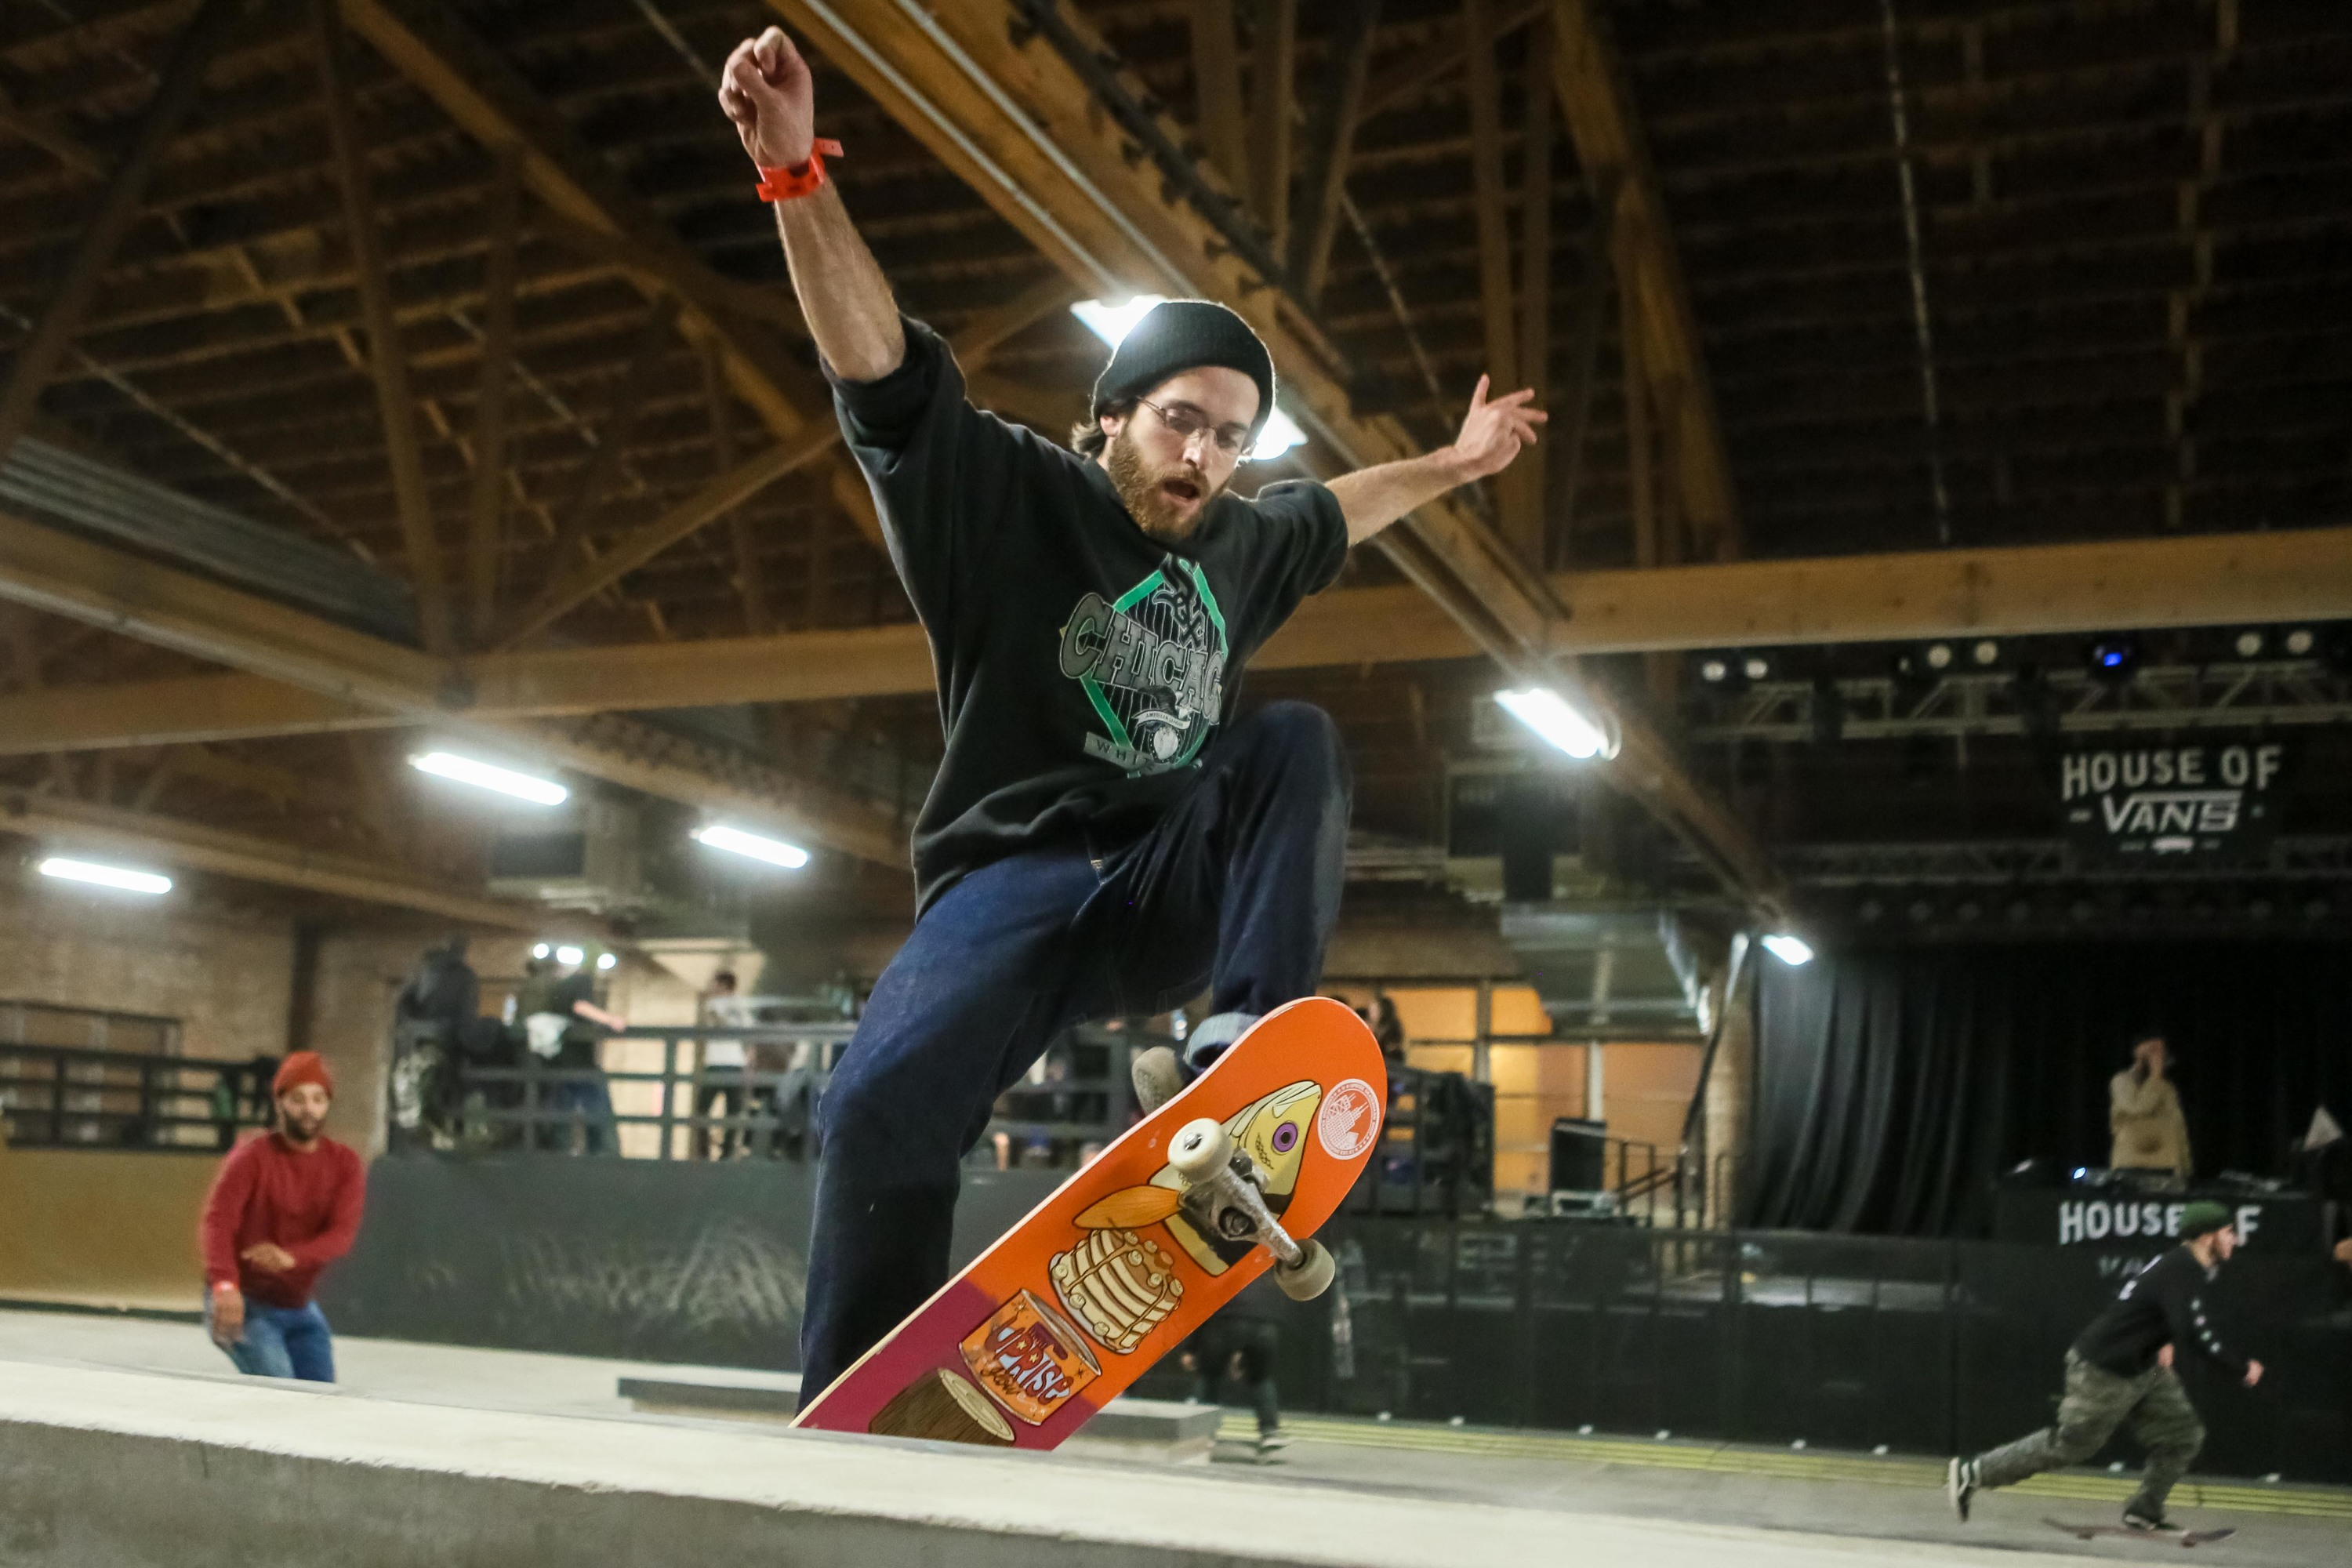 House of Vans launches free skate nights in March